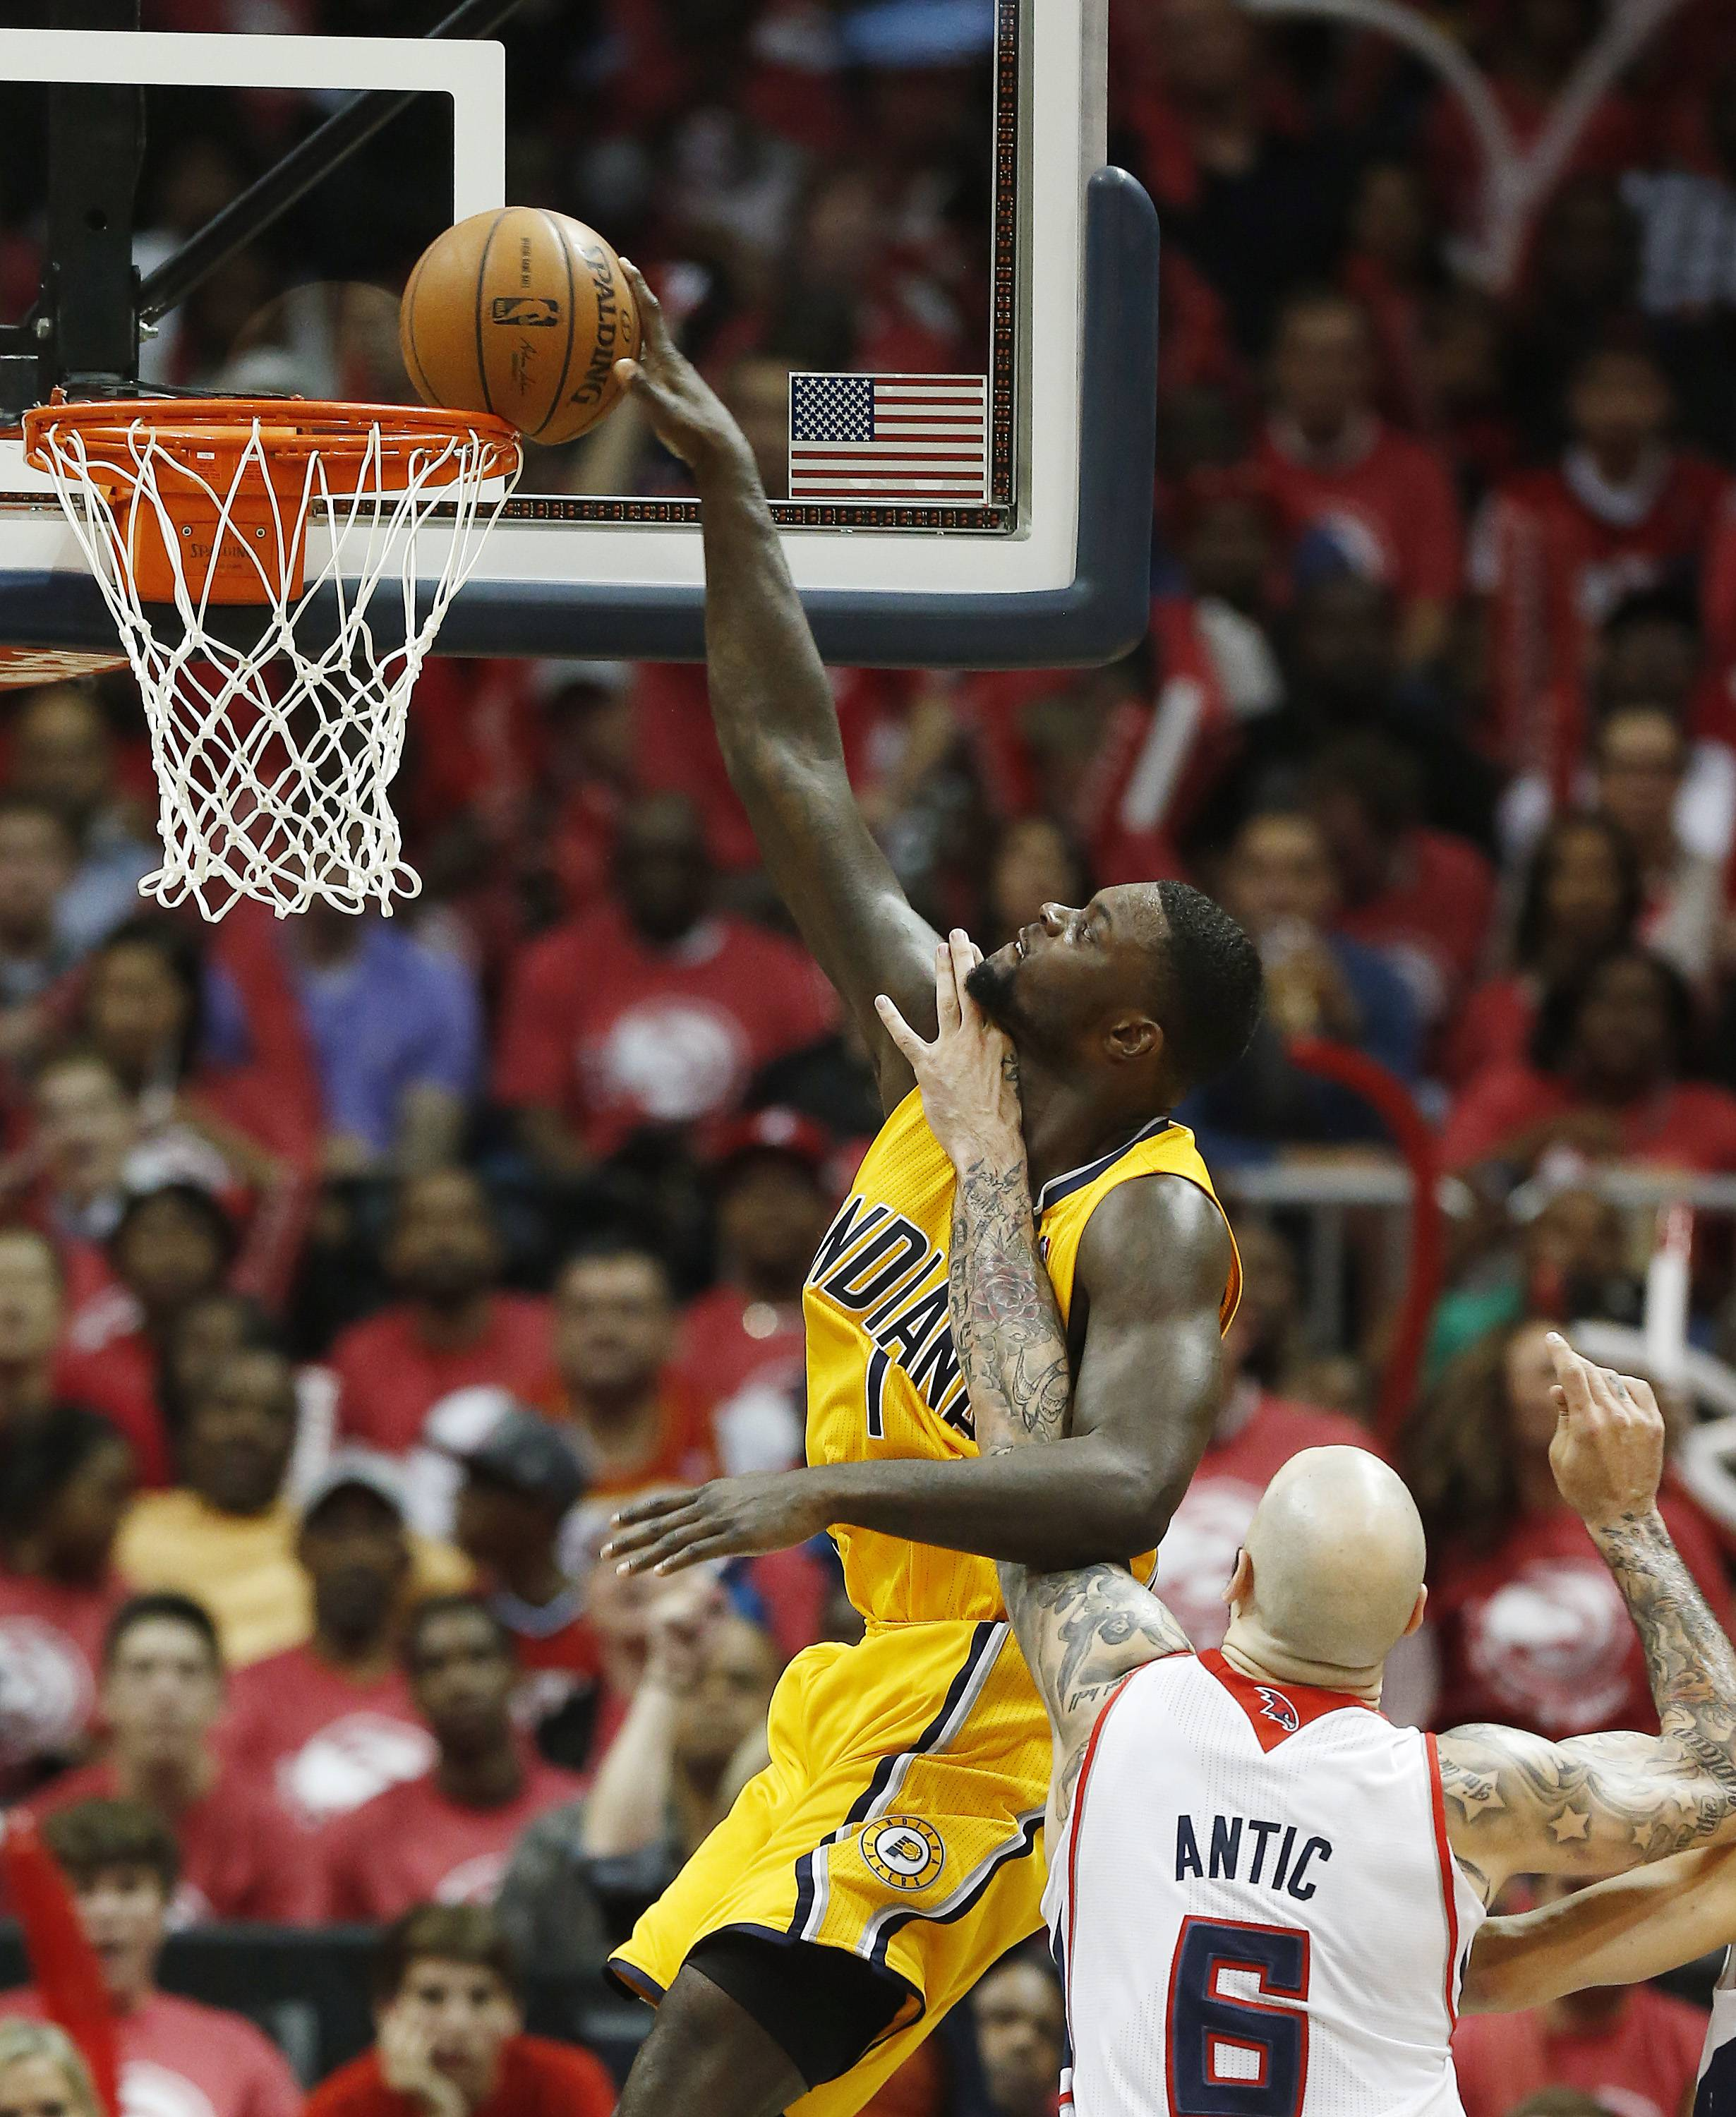 Indiana Pacers guard Lance Stephenson (1) is fouled by Atlanta Hawks center Pero Antic (6) while trying to score in the second half of Game 6 of a first-round NBA basketball playoff series in Atlanta, Thursday, May 1, 2014. Indiana won 95-88.